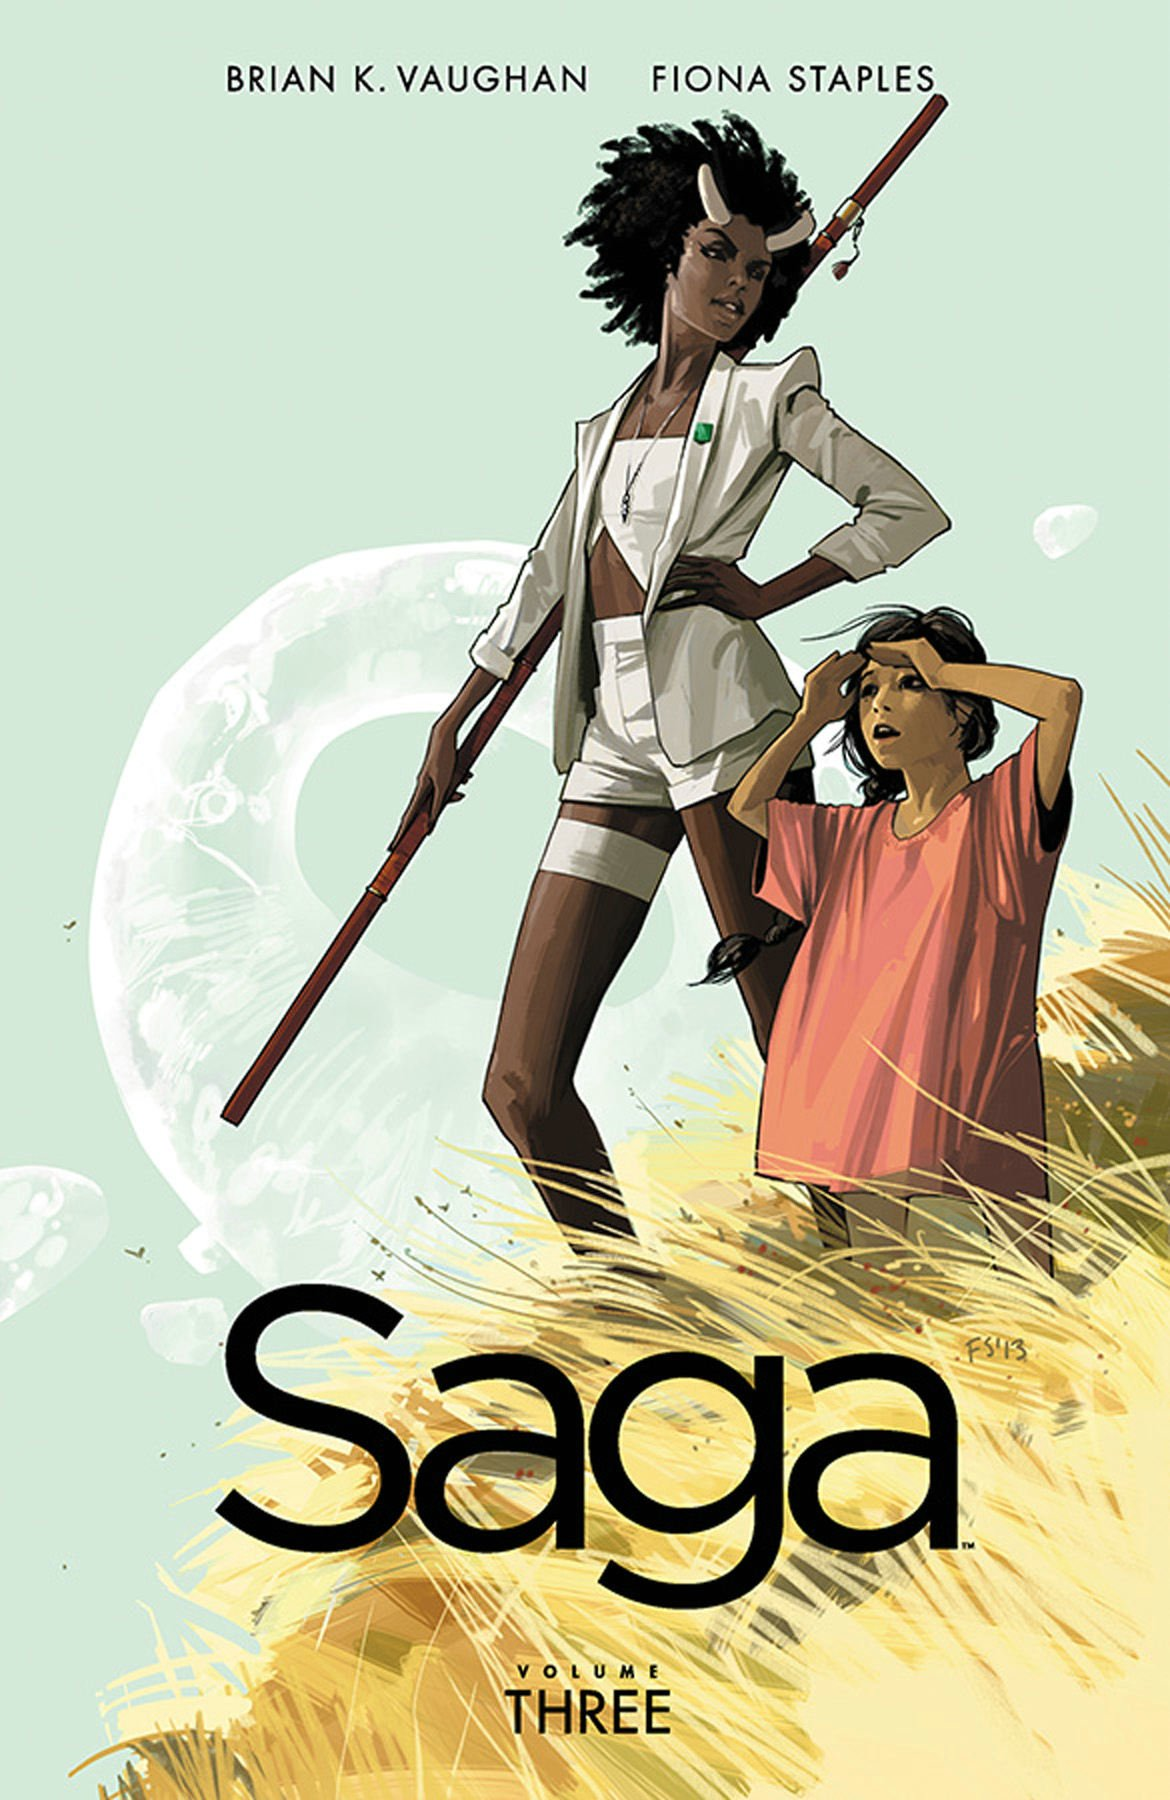 Saga Volume 3: Amazon.co.uk: Vaughan, Brian K, Staples, Fiona:  8601400752357: Books